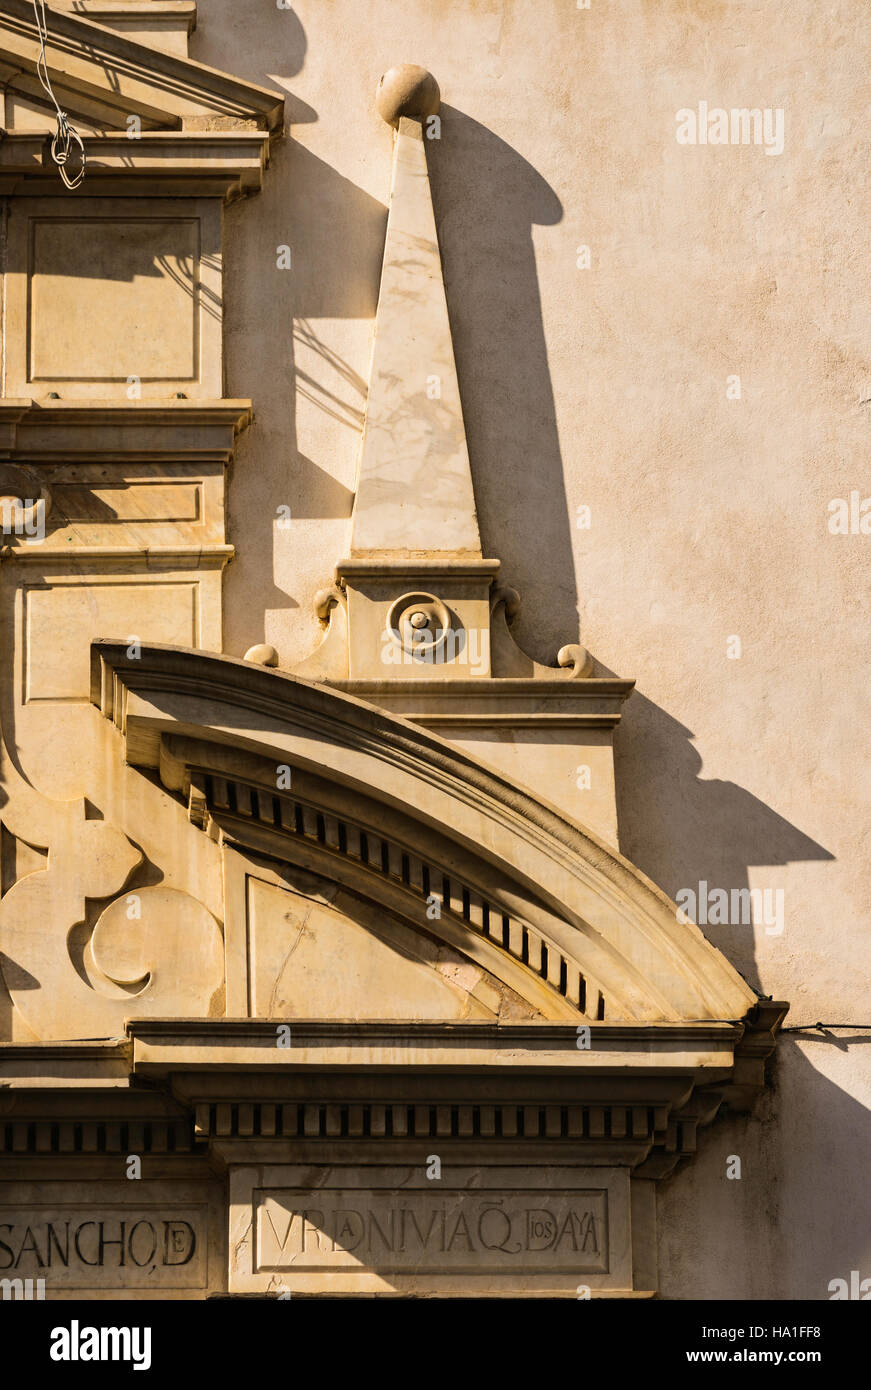 Detail of baroque style broken pediment on church, Calle San Francisco, Cadiz, Andalusia, Spain - Stock Image